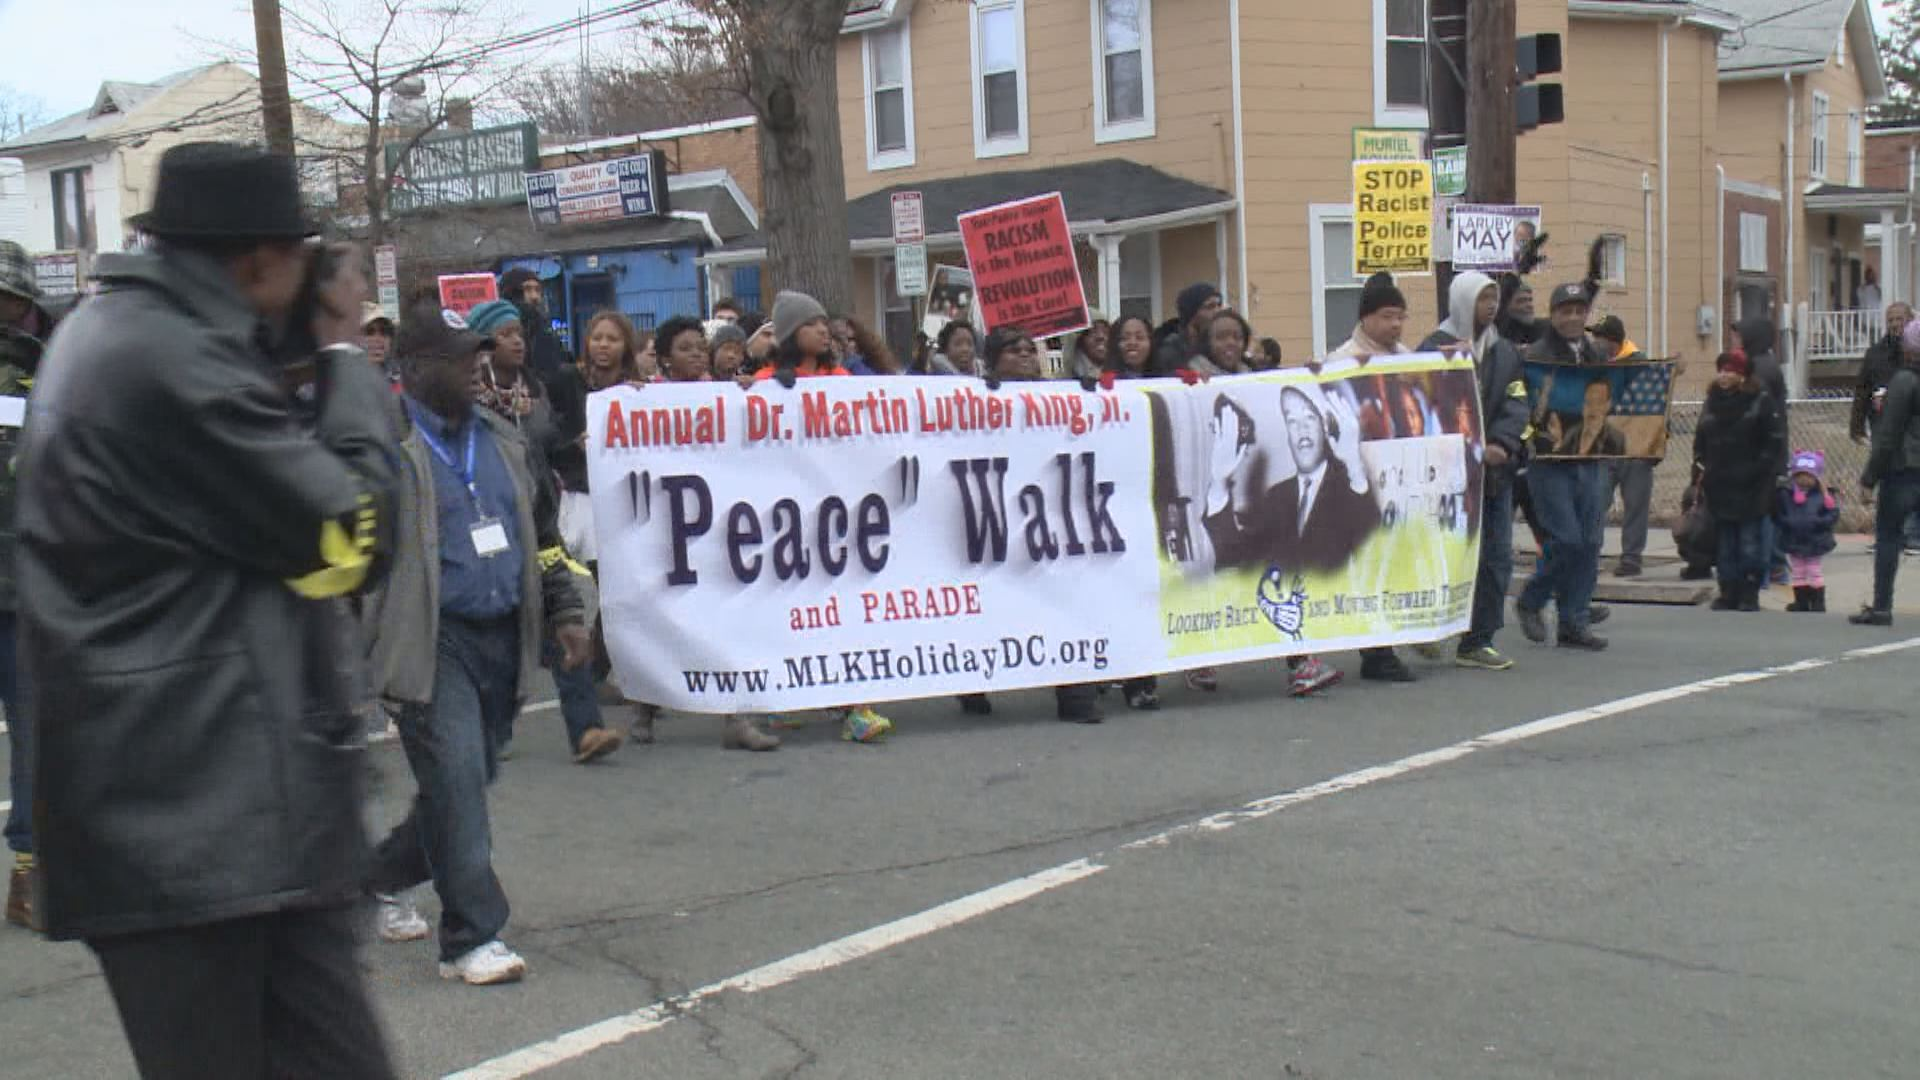 rssfeeds.detroitnews.com DC area honoring legacy of Martin Luther King Jr. d3d8ae78a0d